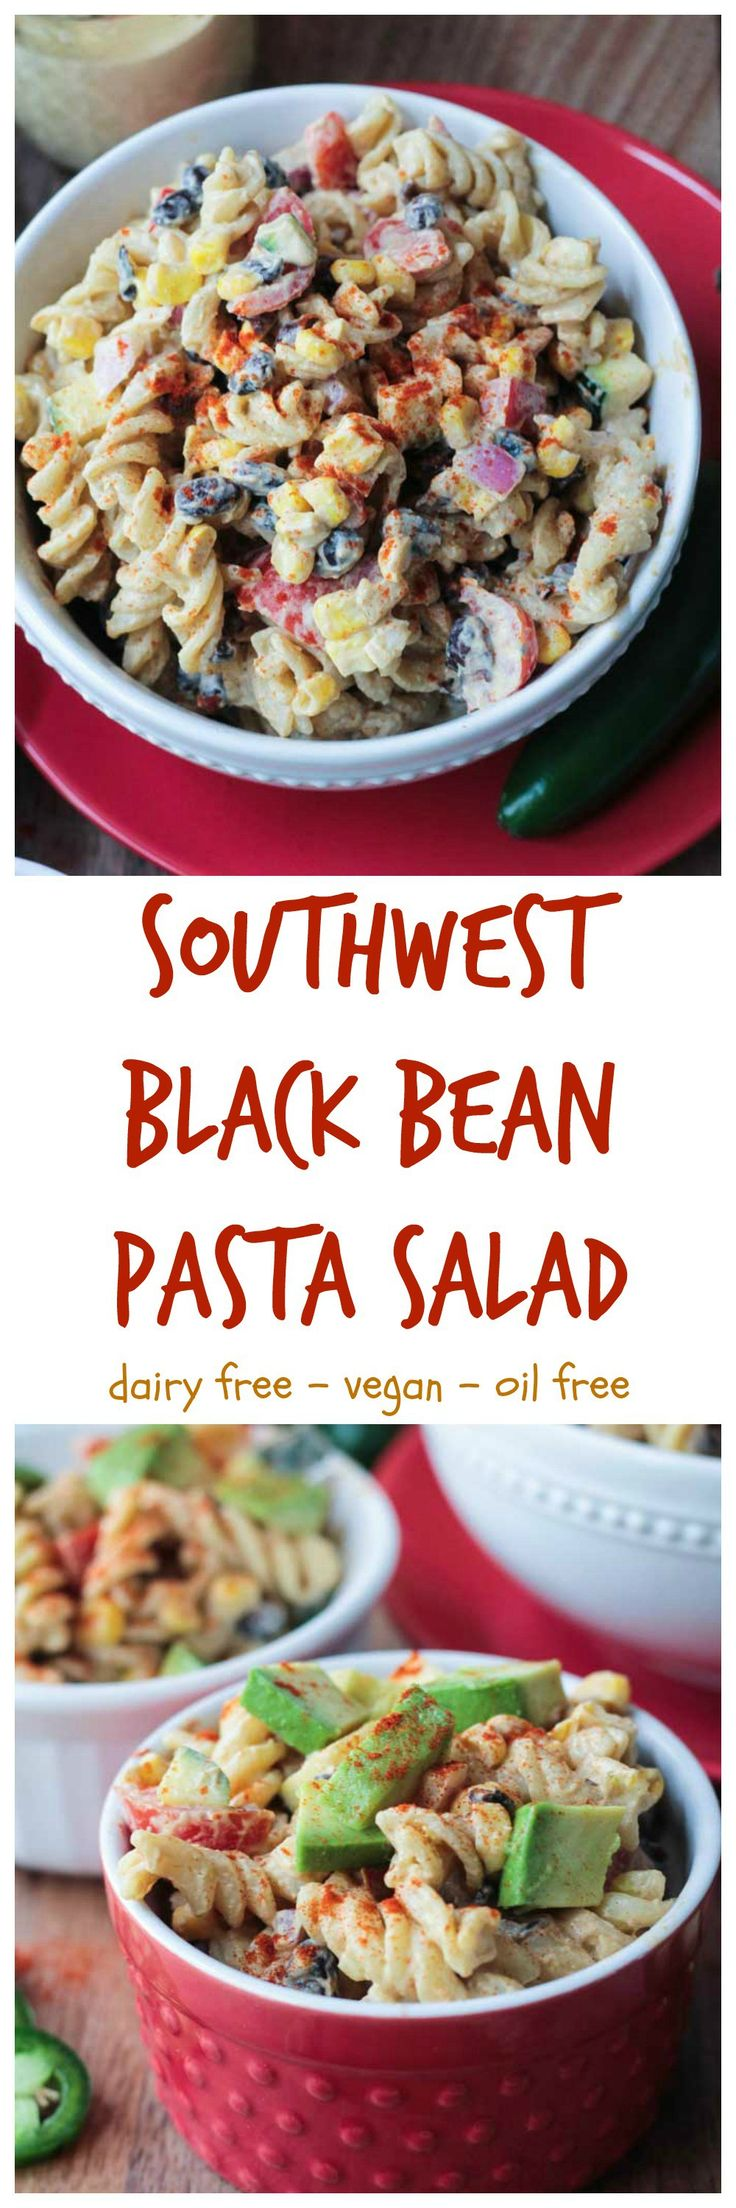 Southwest Black Bean Pasta Salad - the perfect flavorful salad for all your summer BBQ's. It's super creamy with just a bit of a kick from jalapeño blended into the dairy free, oil free dressing. All of your favorite Mexican flavors packed inside a healthy pasta salad. Bring it to any party or potluck and don't plan on bringing any leftovers home!